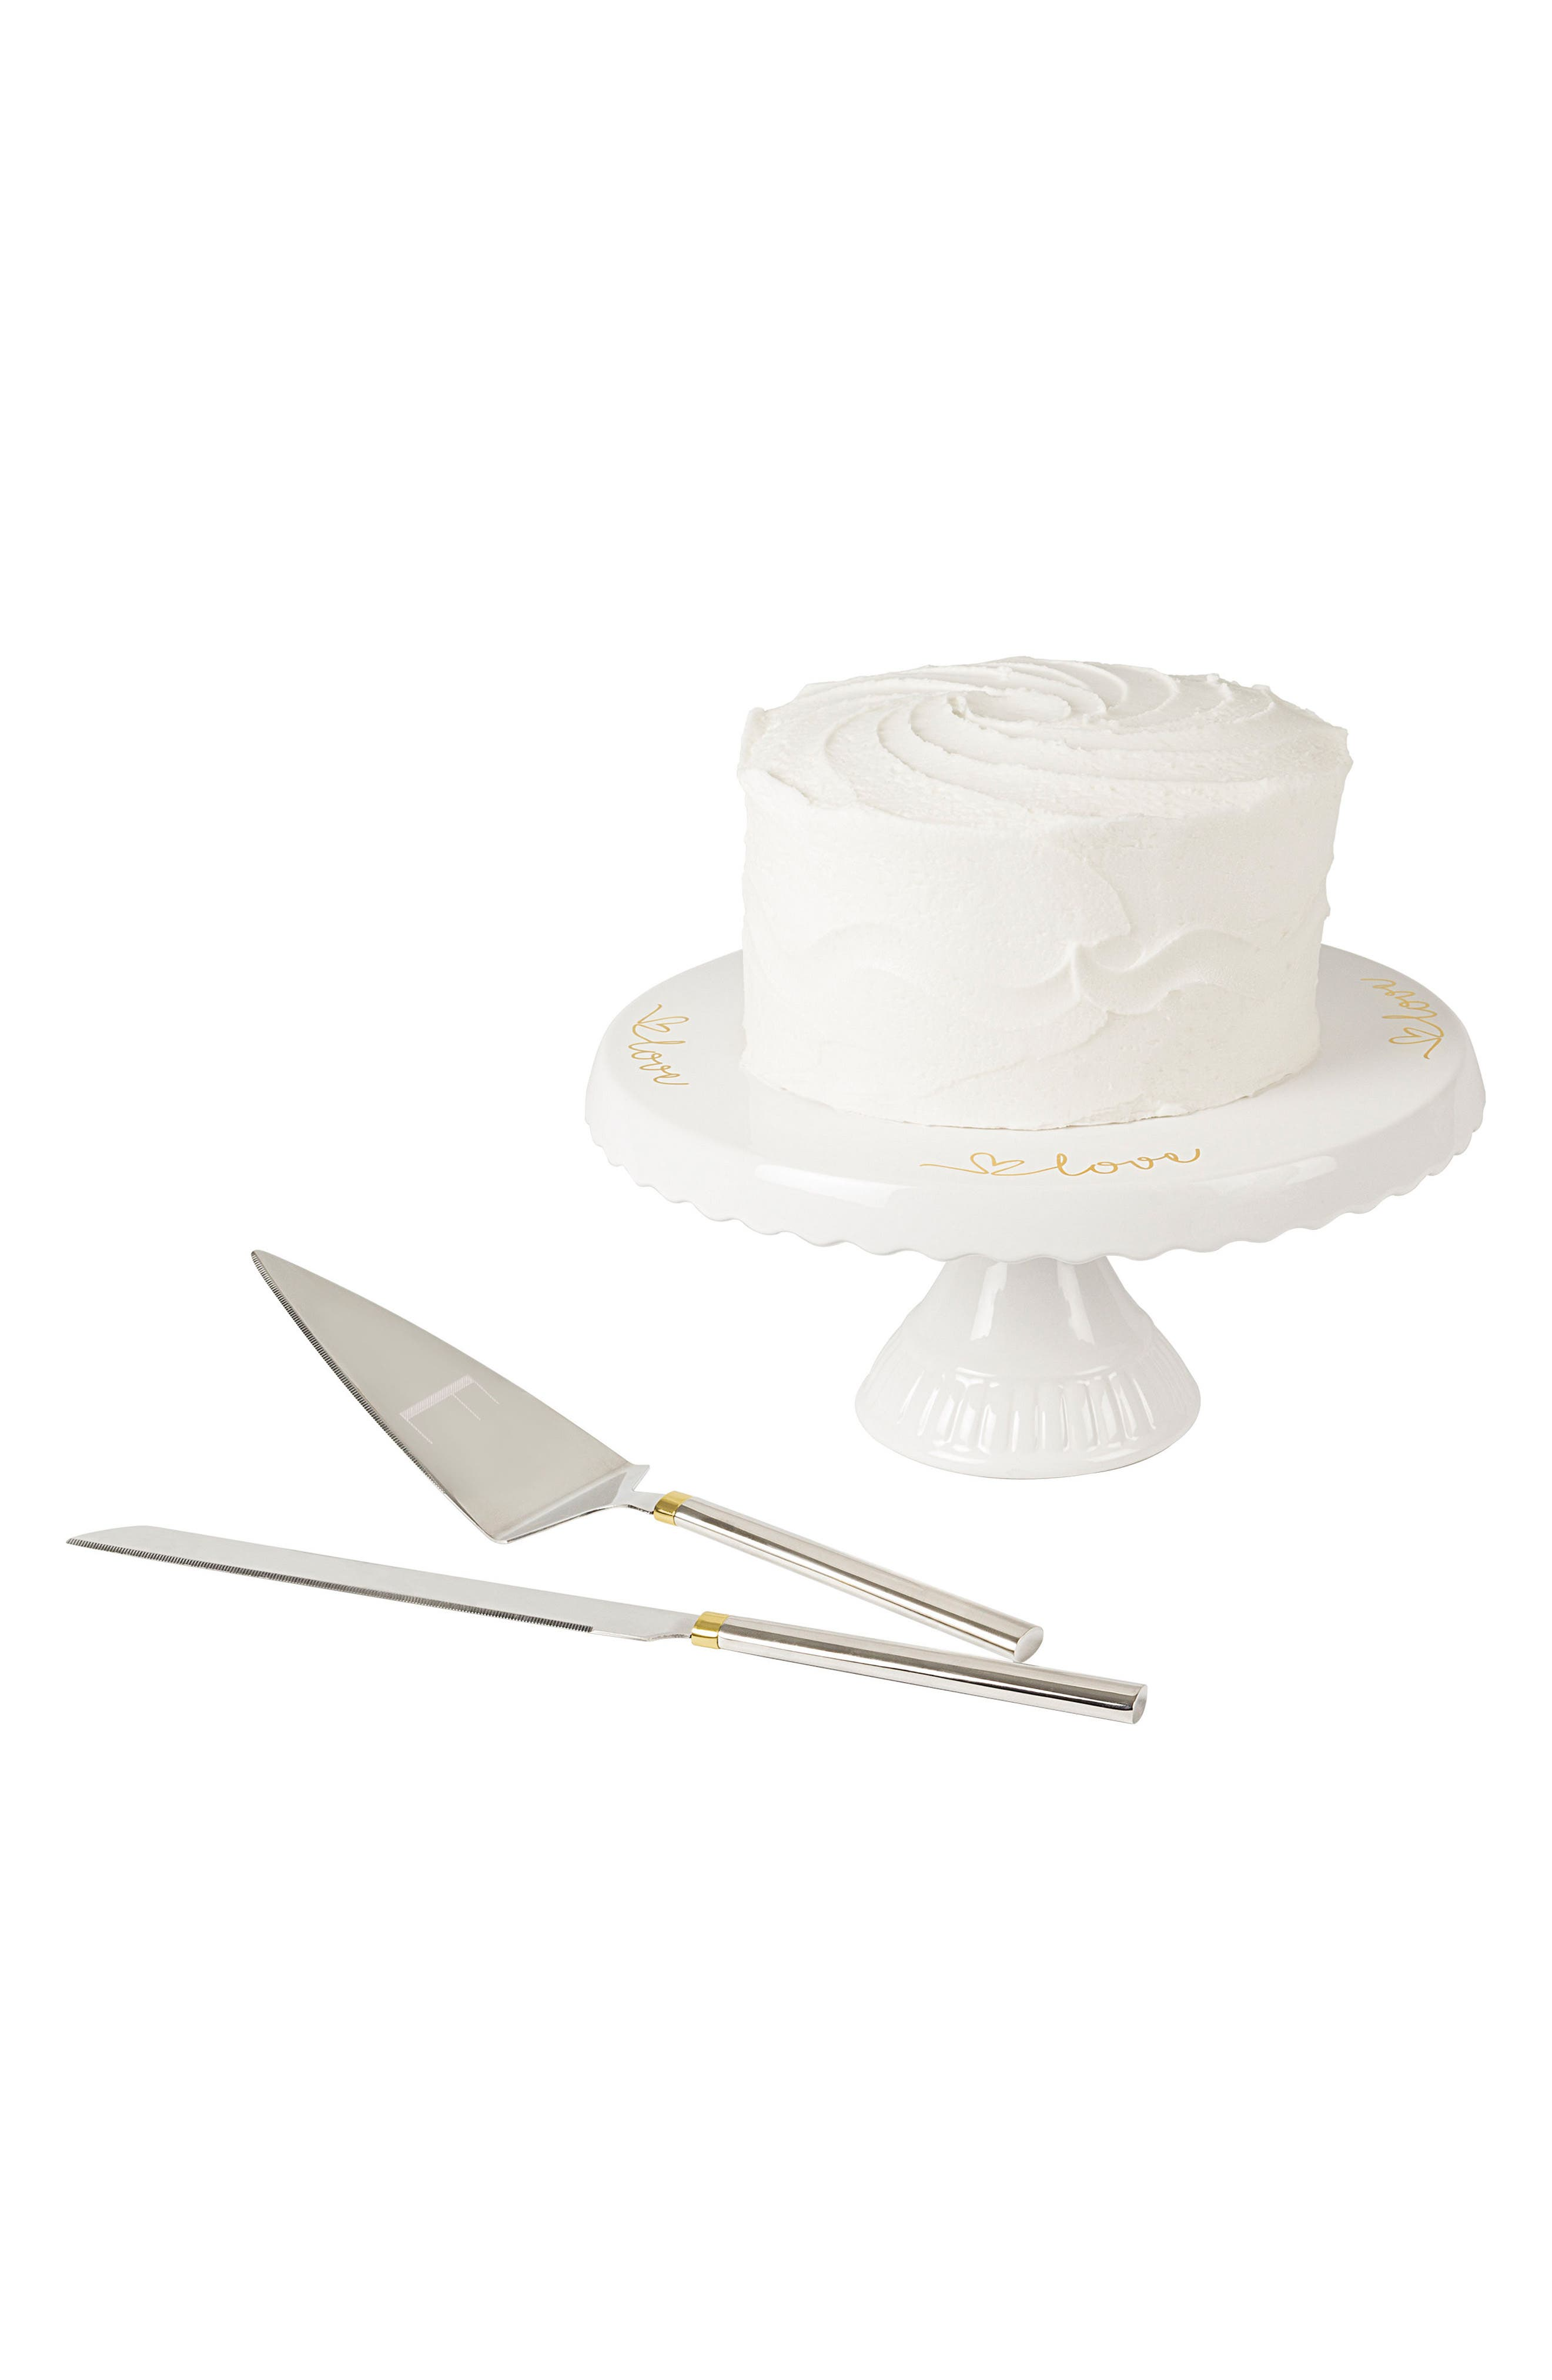 Love Monogram Cake Stand & Server Set,                             Main thumbnail 6, color,